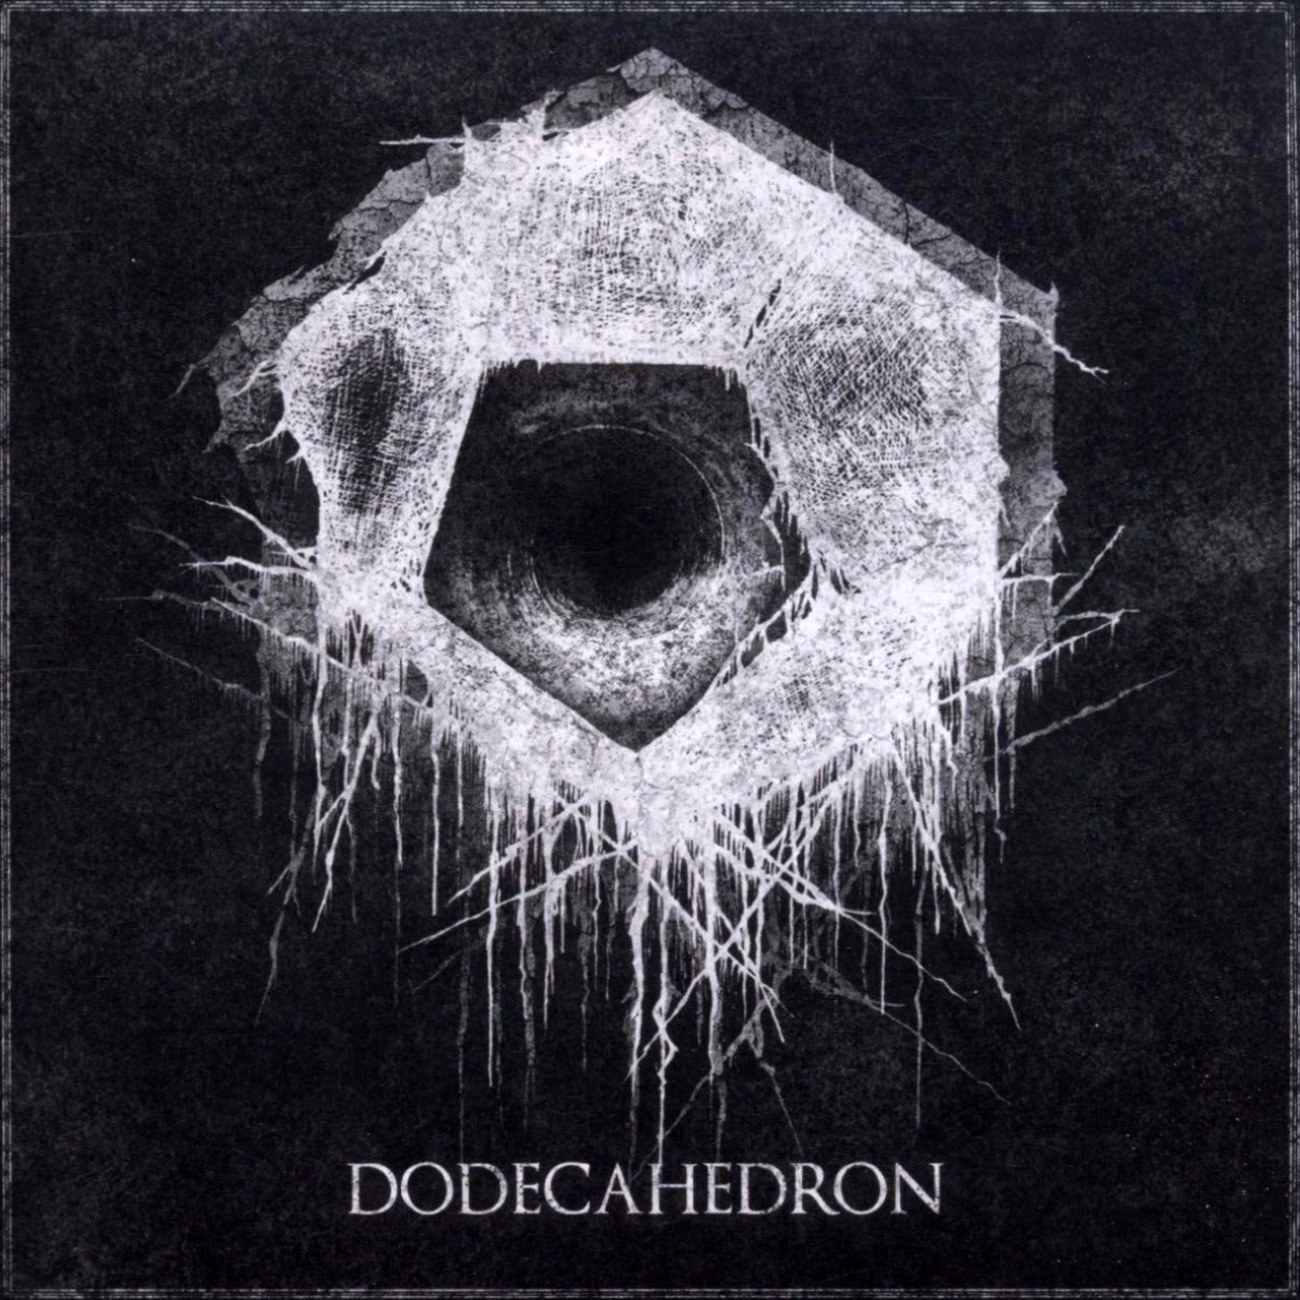 Review for Dodecahedron - Dodecahedron